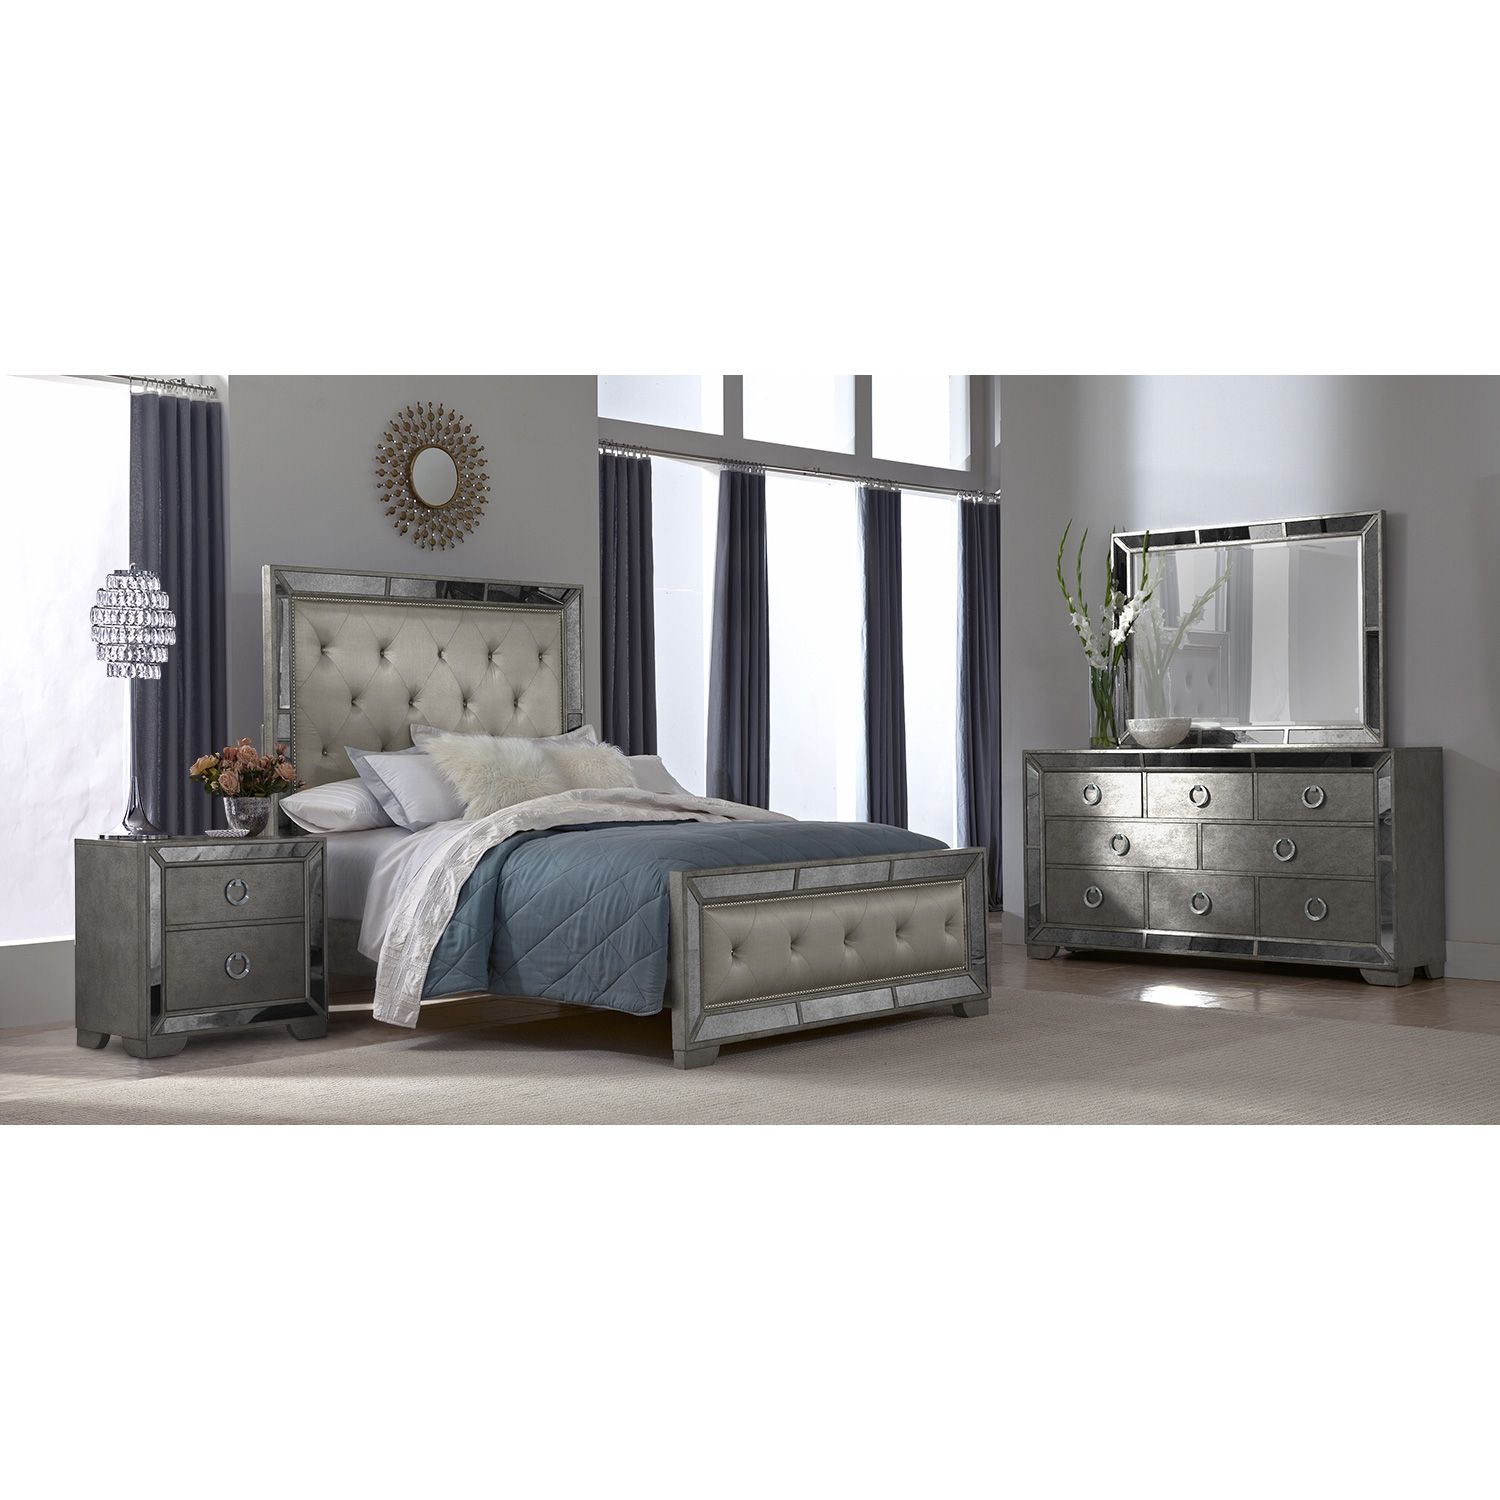 Etonnant Queen Bedroom   Value City Furniture